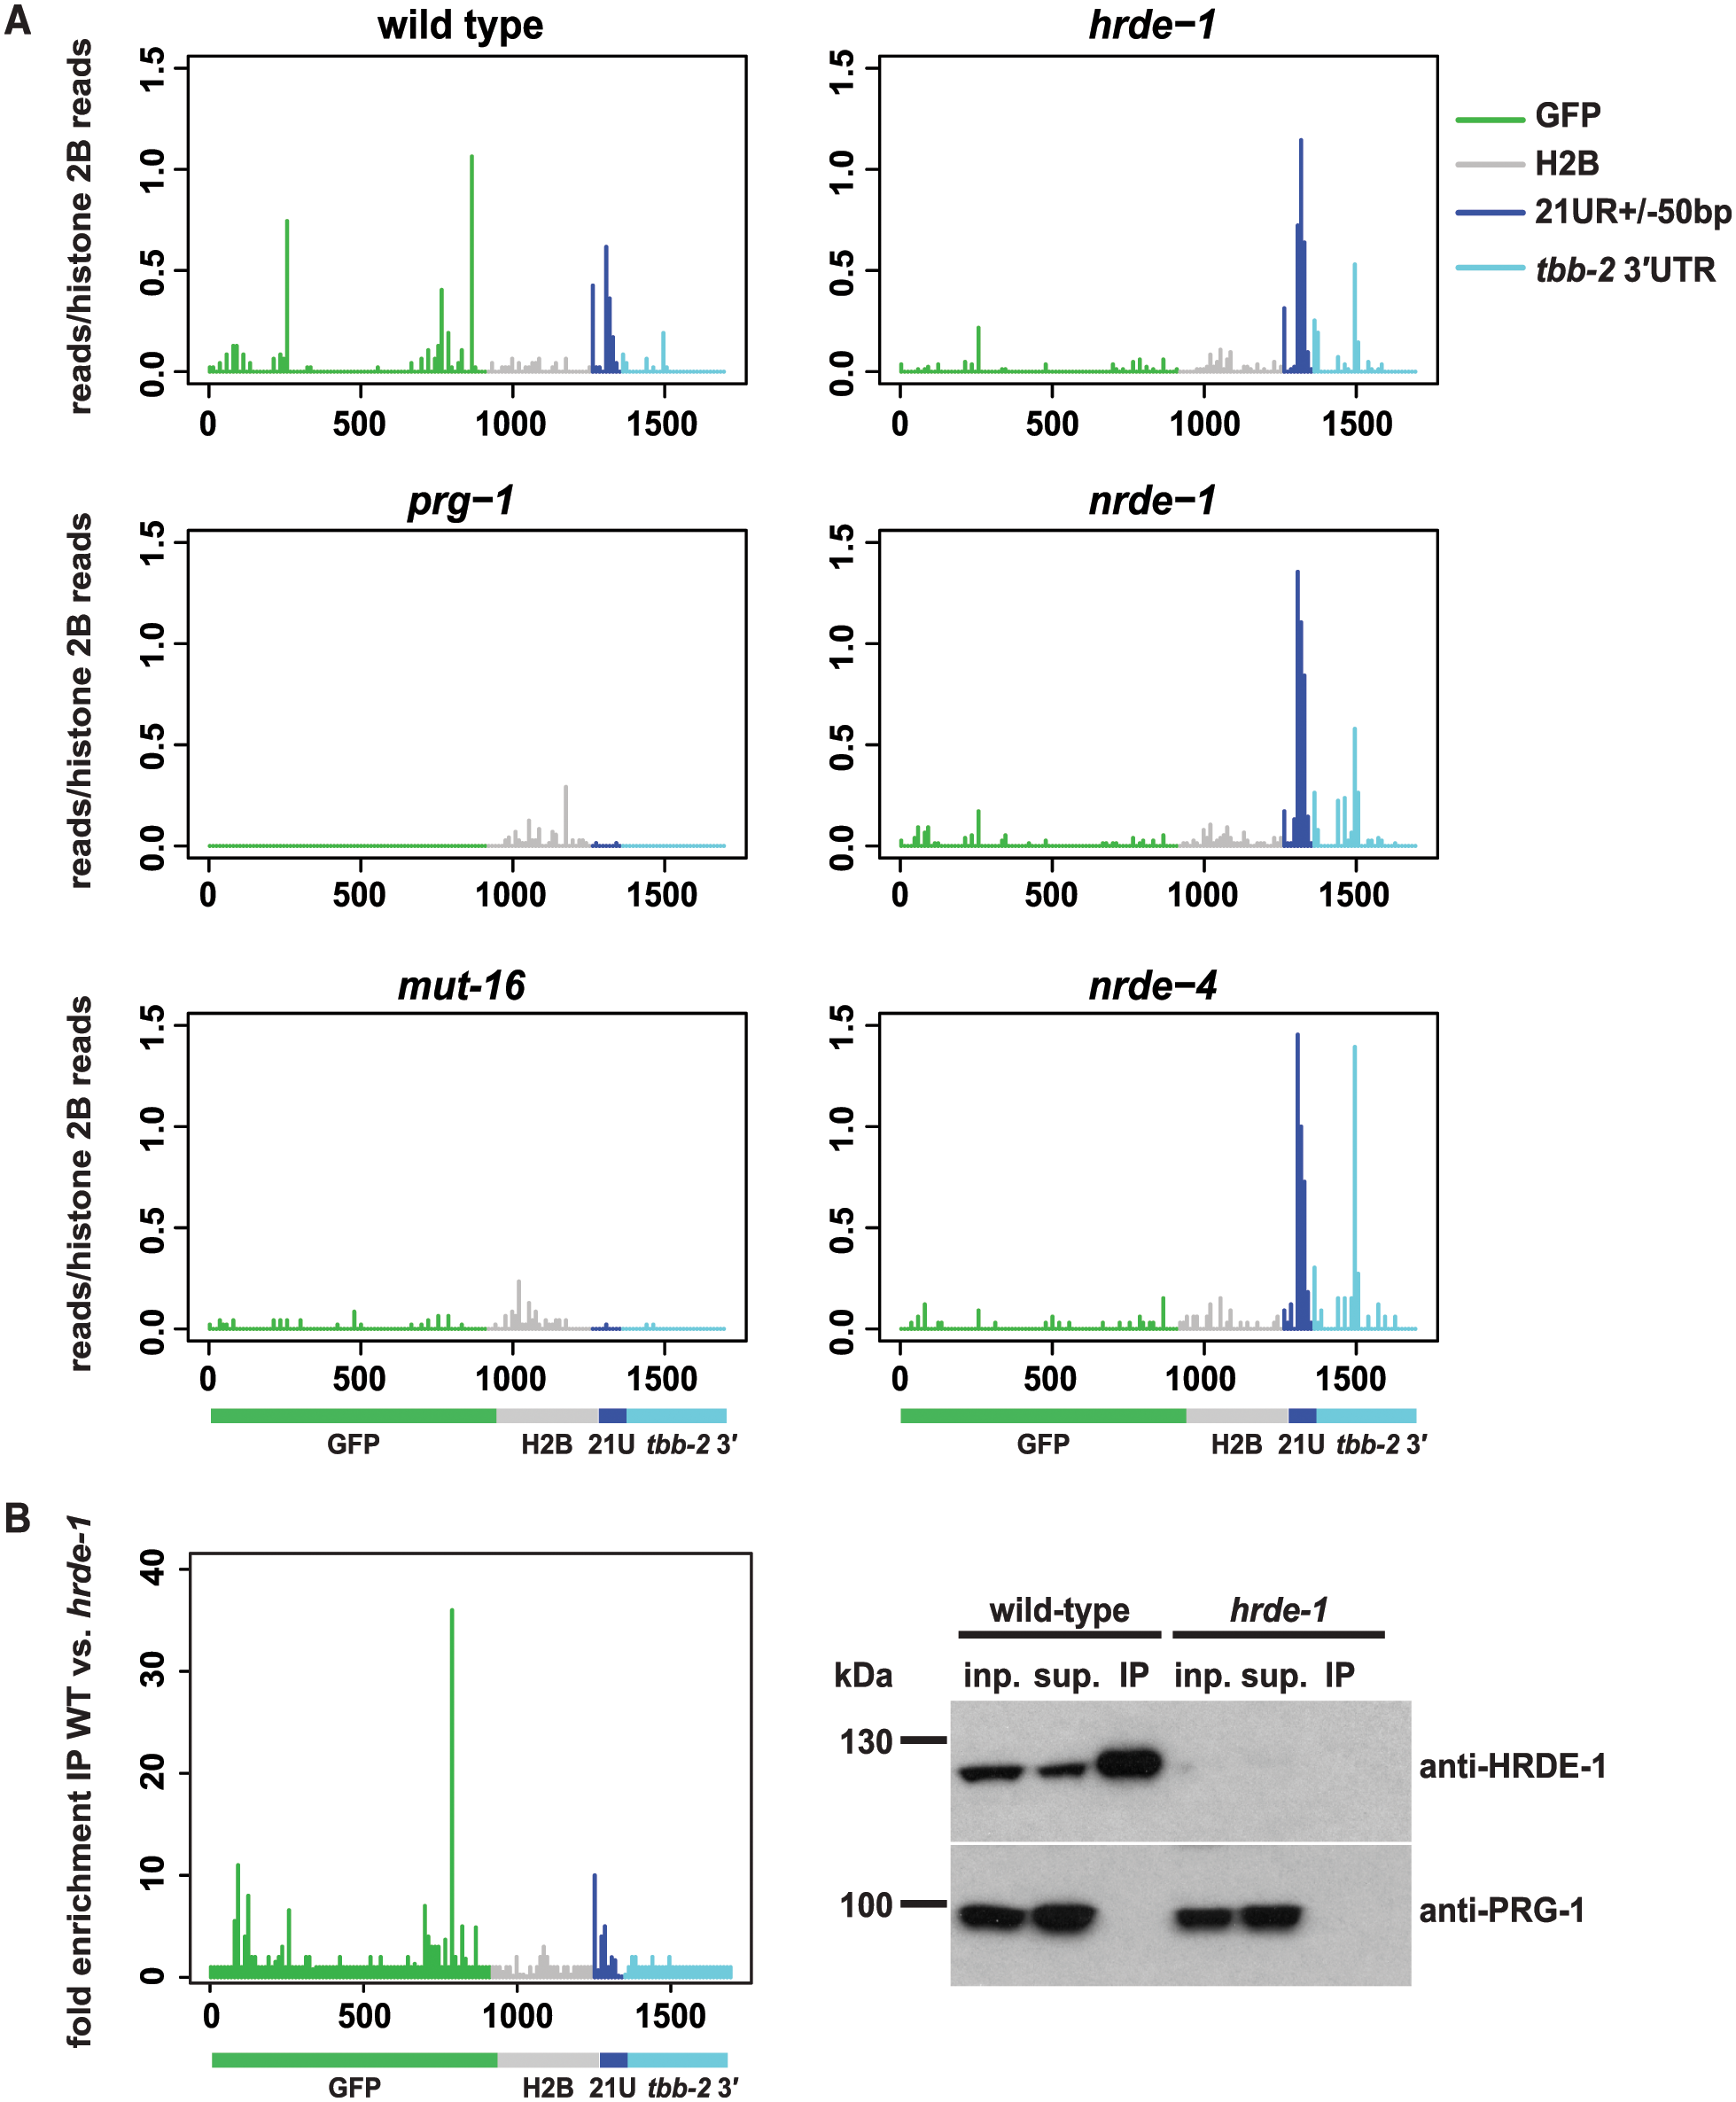 22G-RNAs distal to piRNA target sites require the nuclear RNAi pathway.